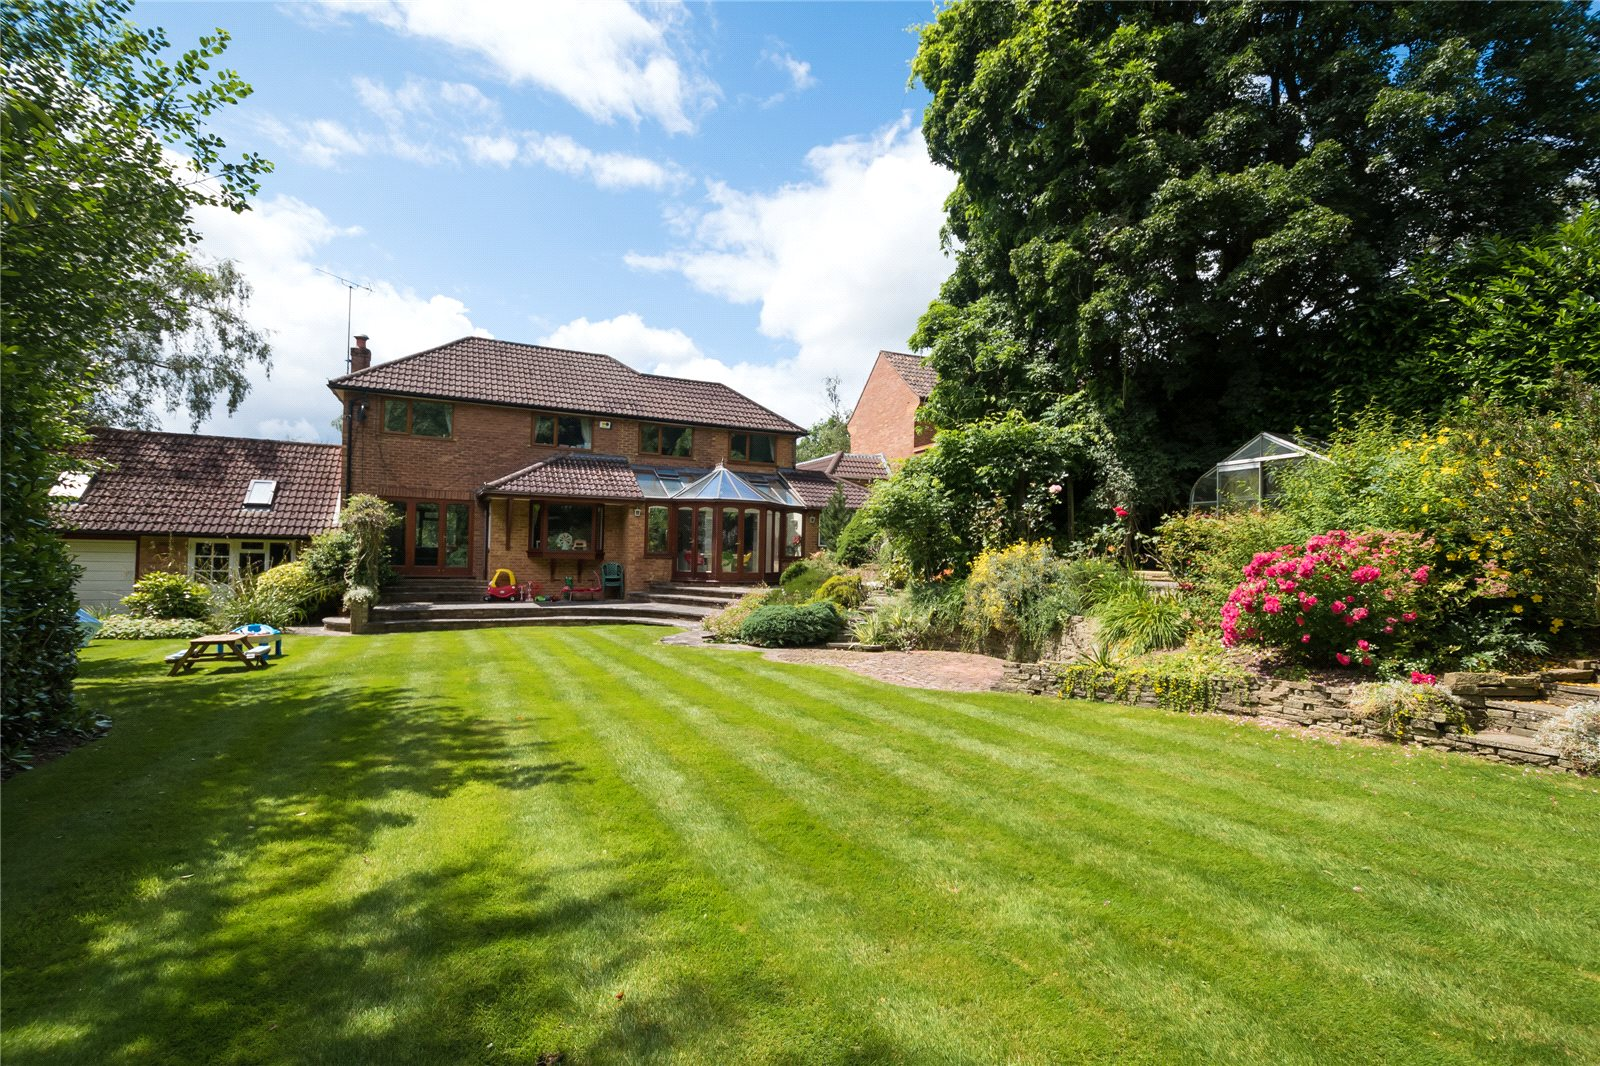 Villa per Vendita alle ore The Uplands, Gerrards Cross, Buckinghamshire, SL9 Gerrards Cross, Inghilterra